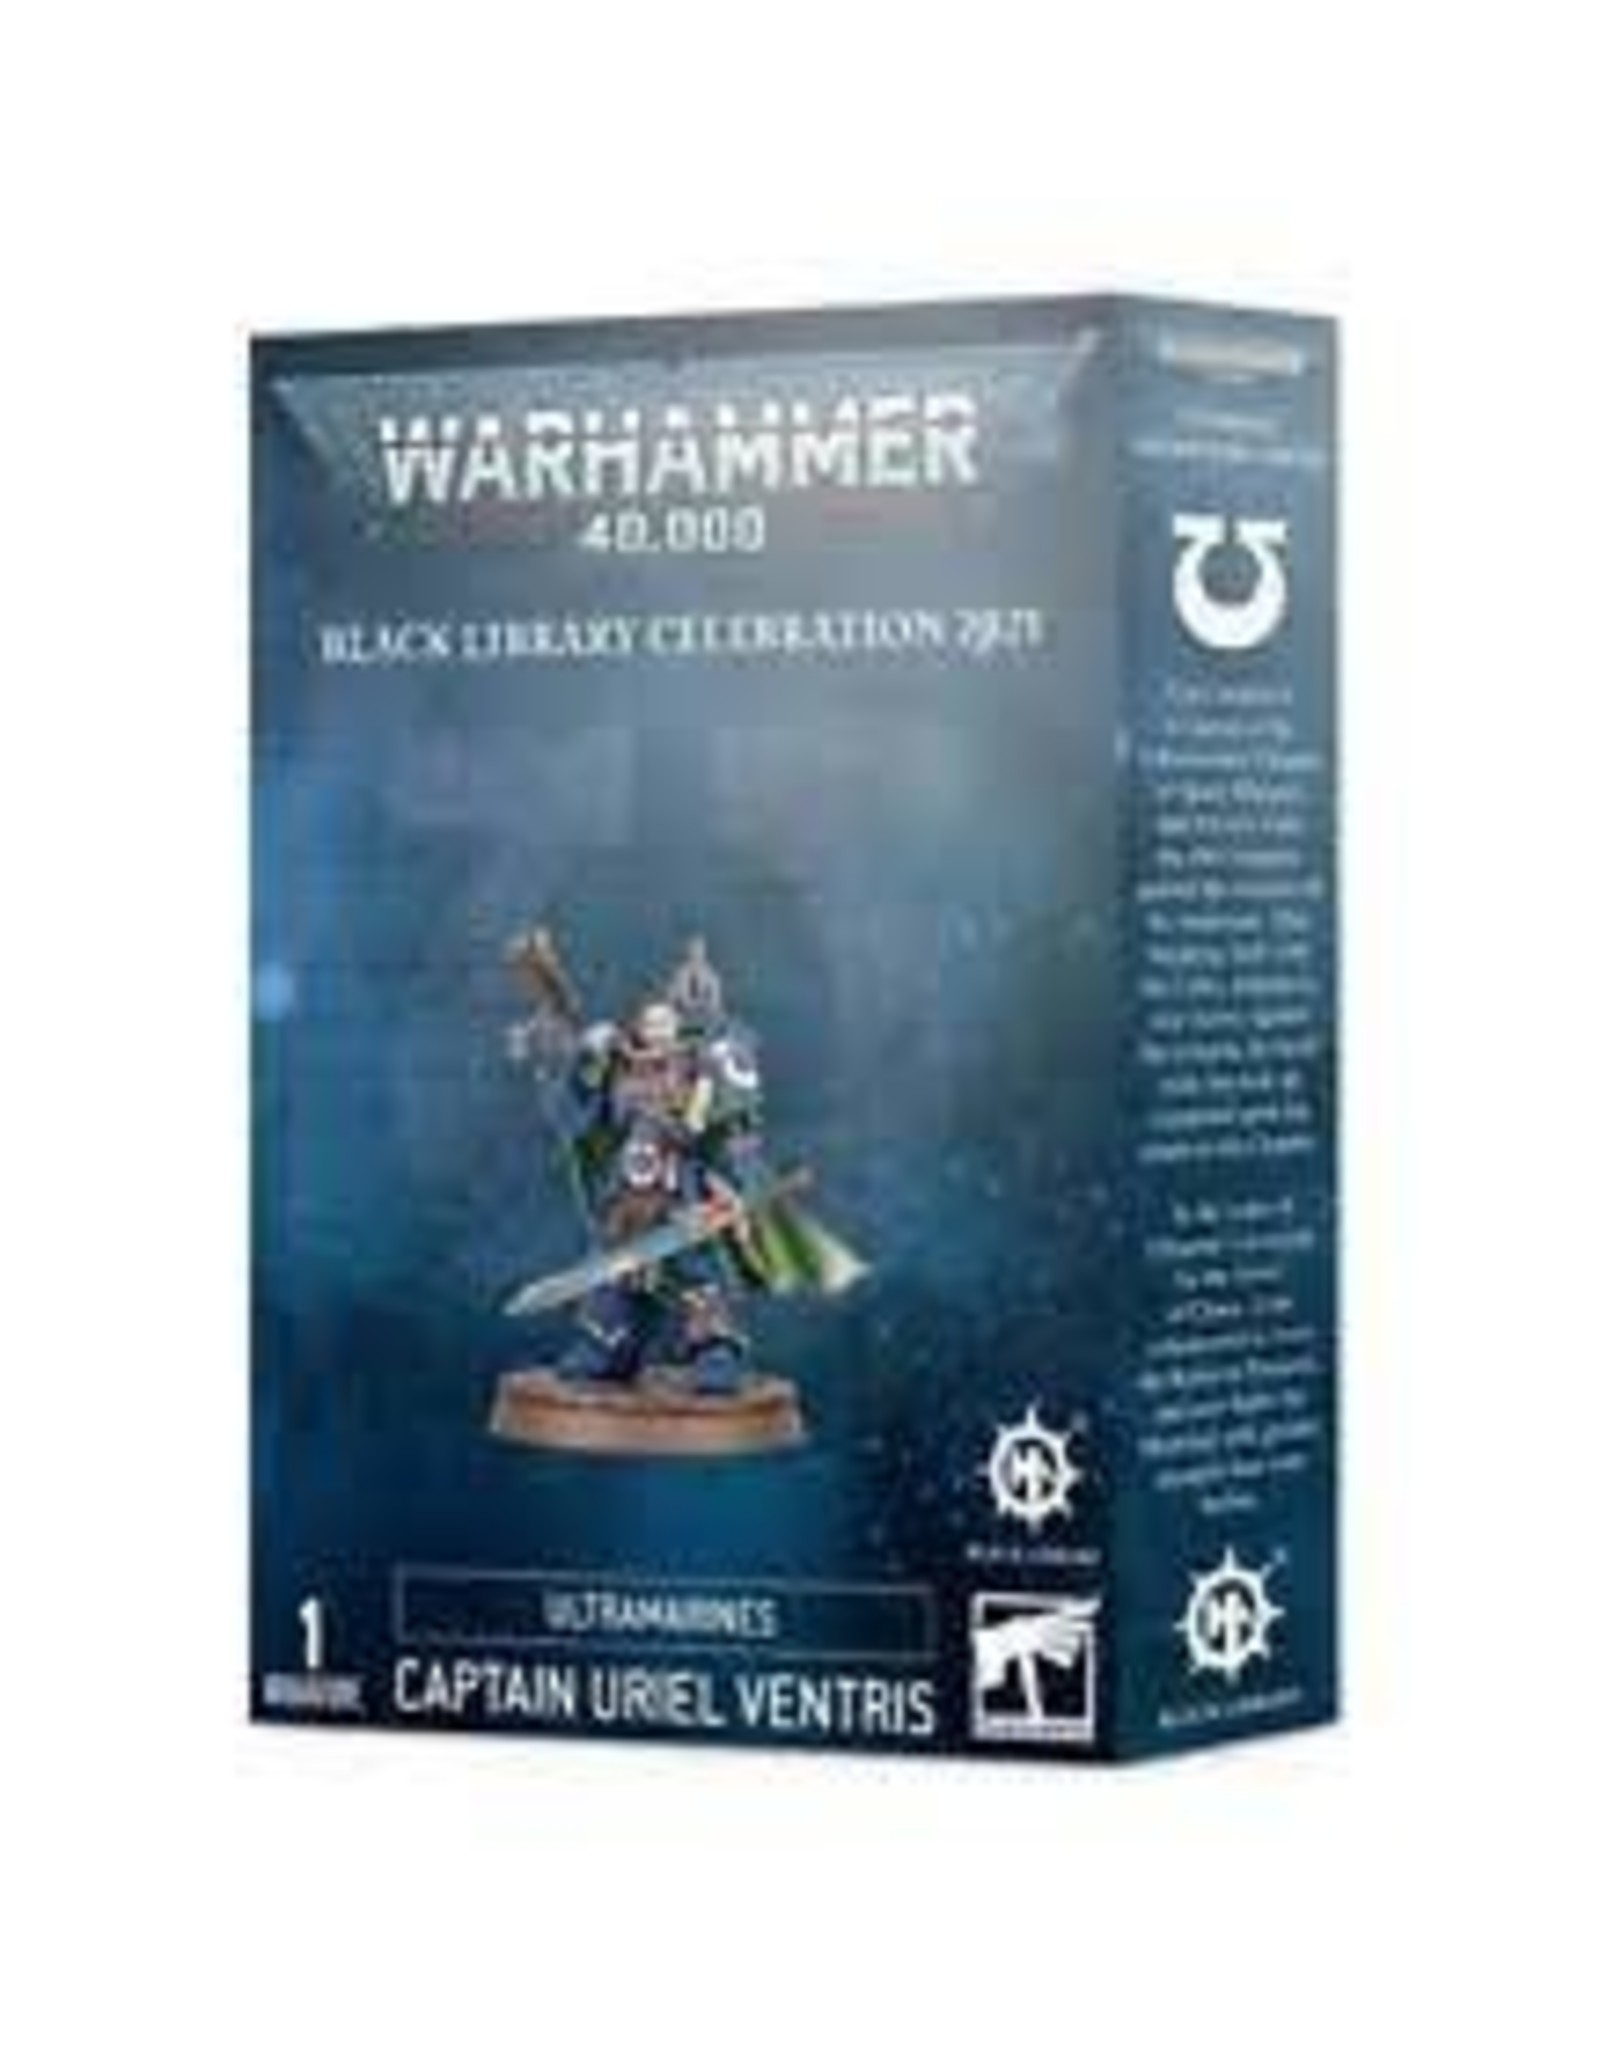 Warhammer 40K Ultramarines Captain Uriel Ventris